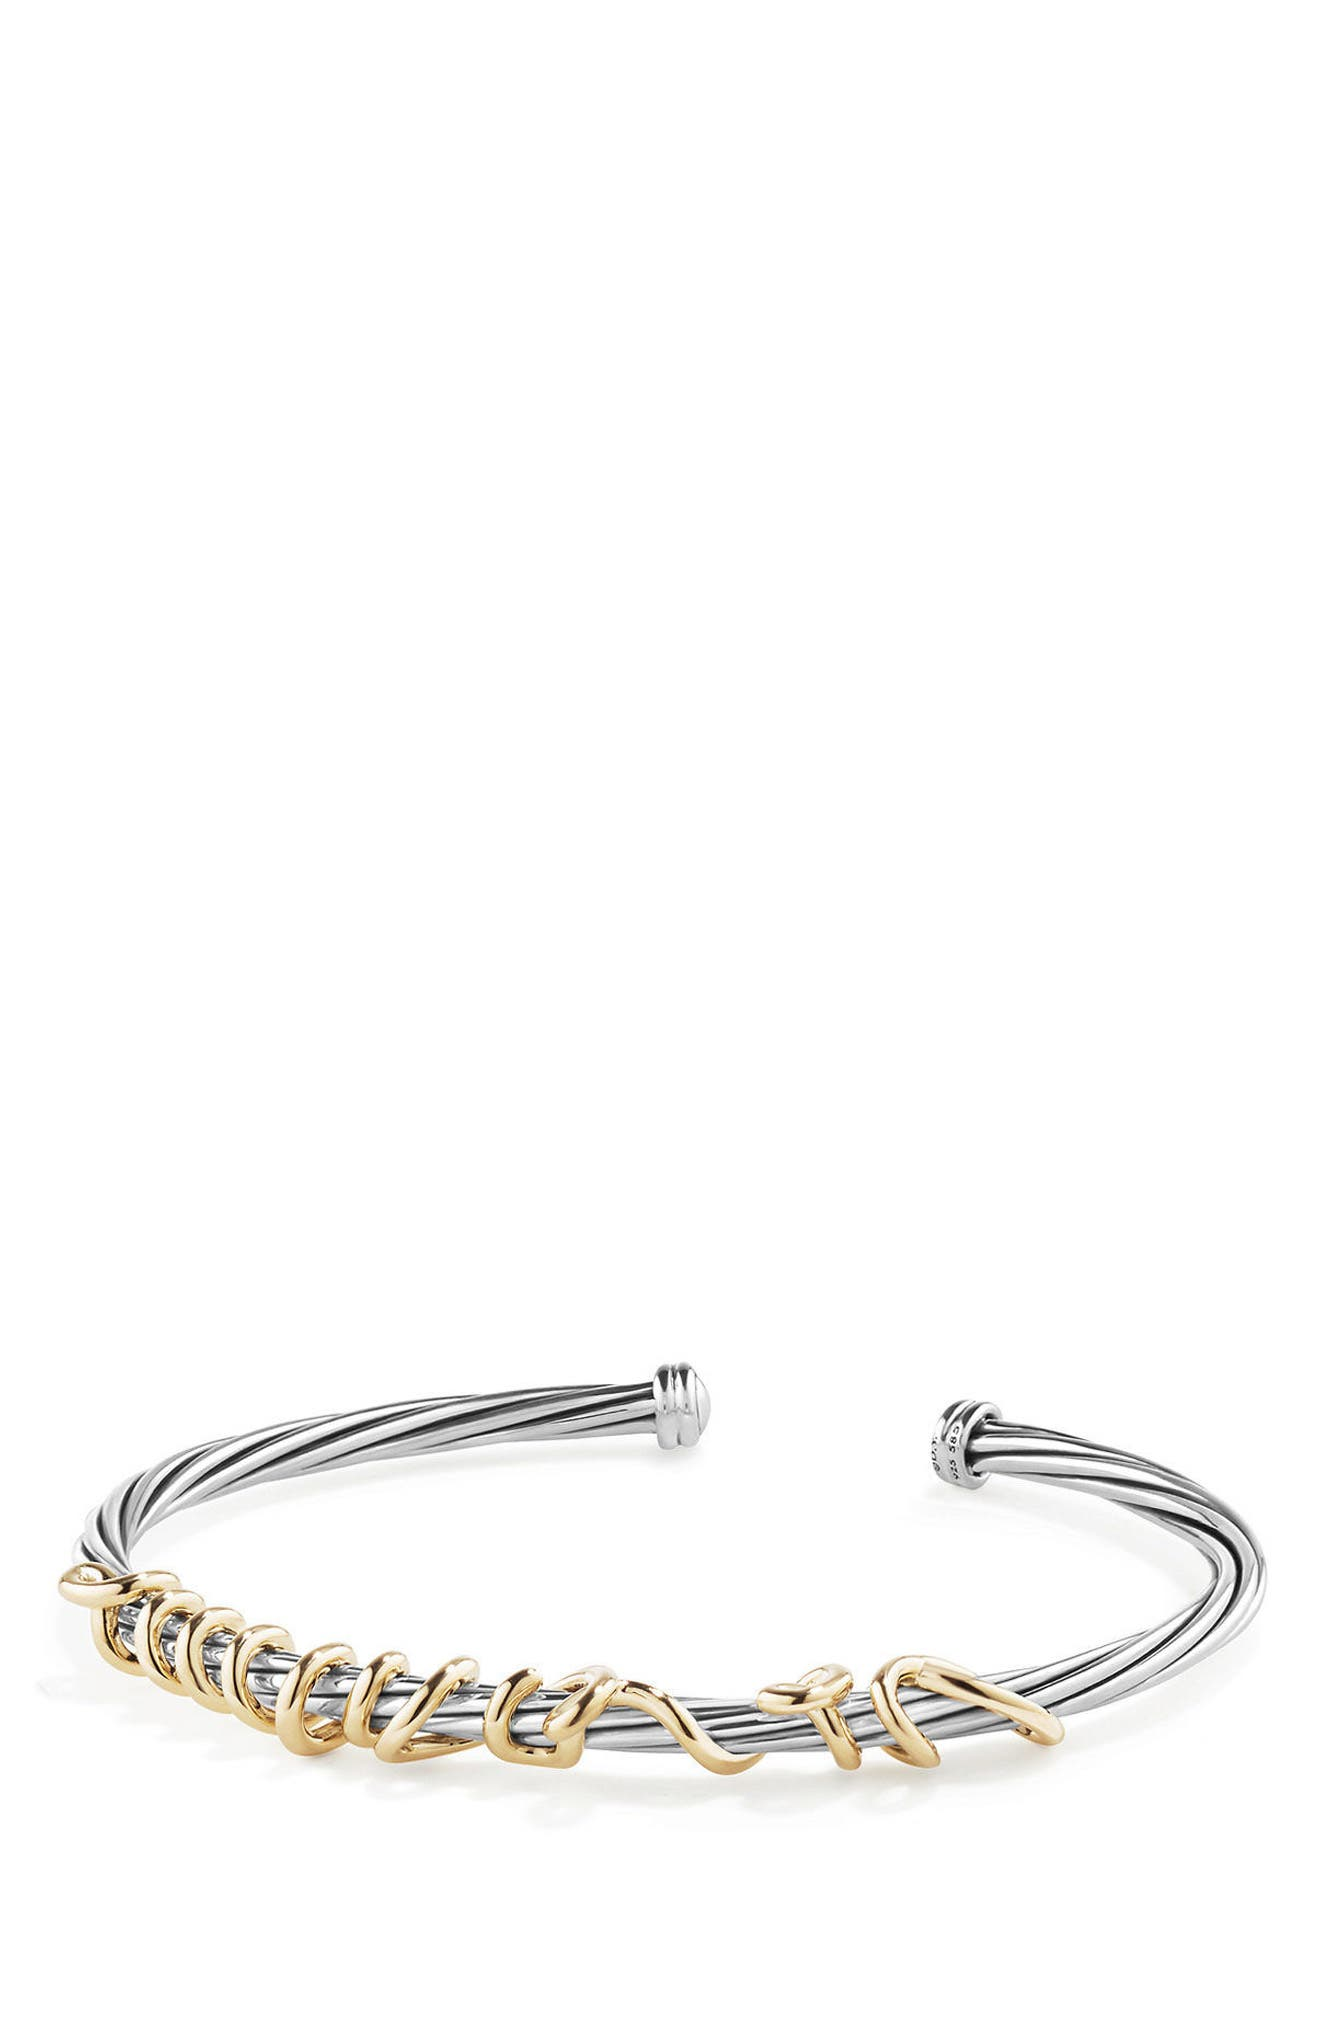 DAVID YURMAN DY Whispers Je T'aime Bracelet with 14k Gold, Main, color, 040